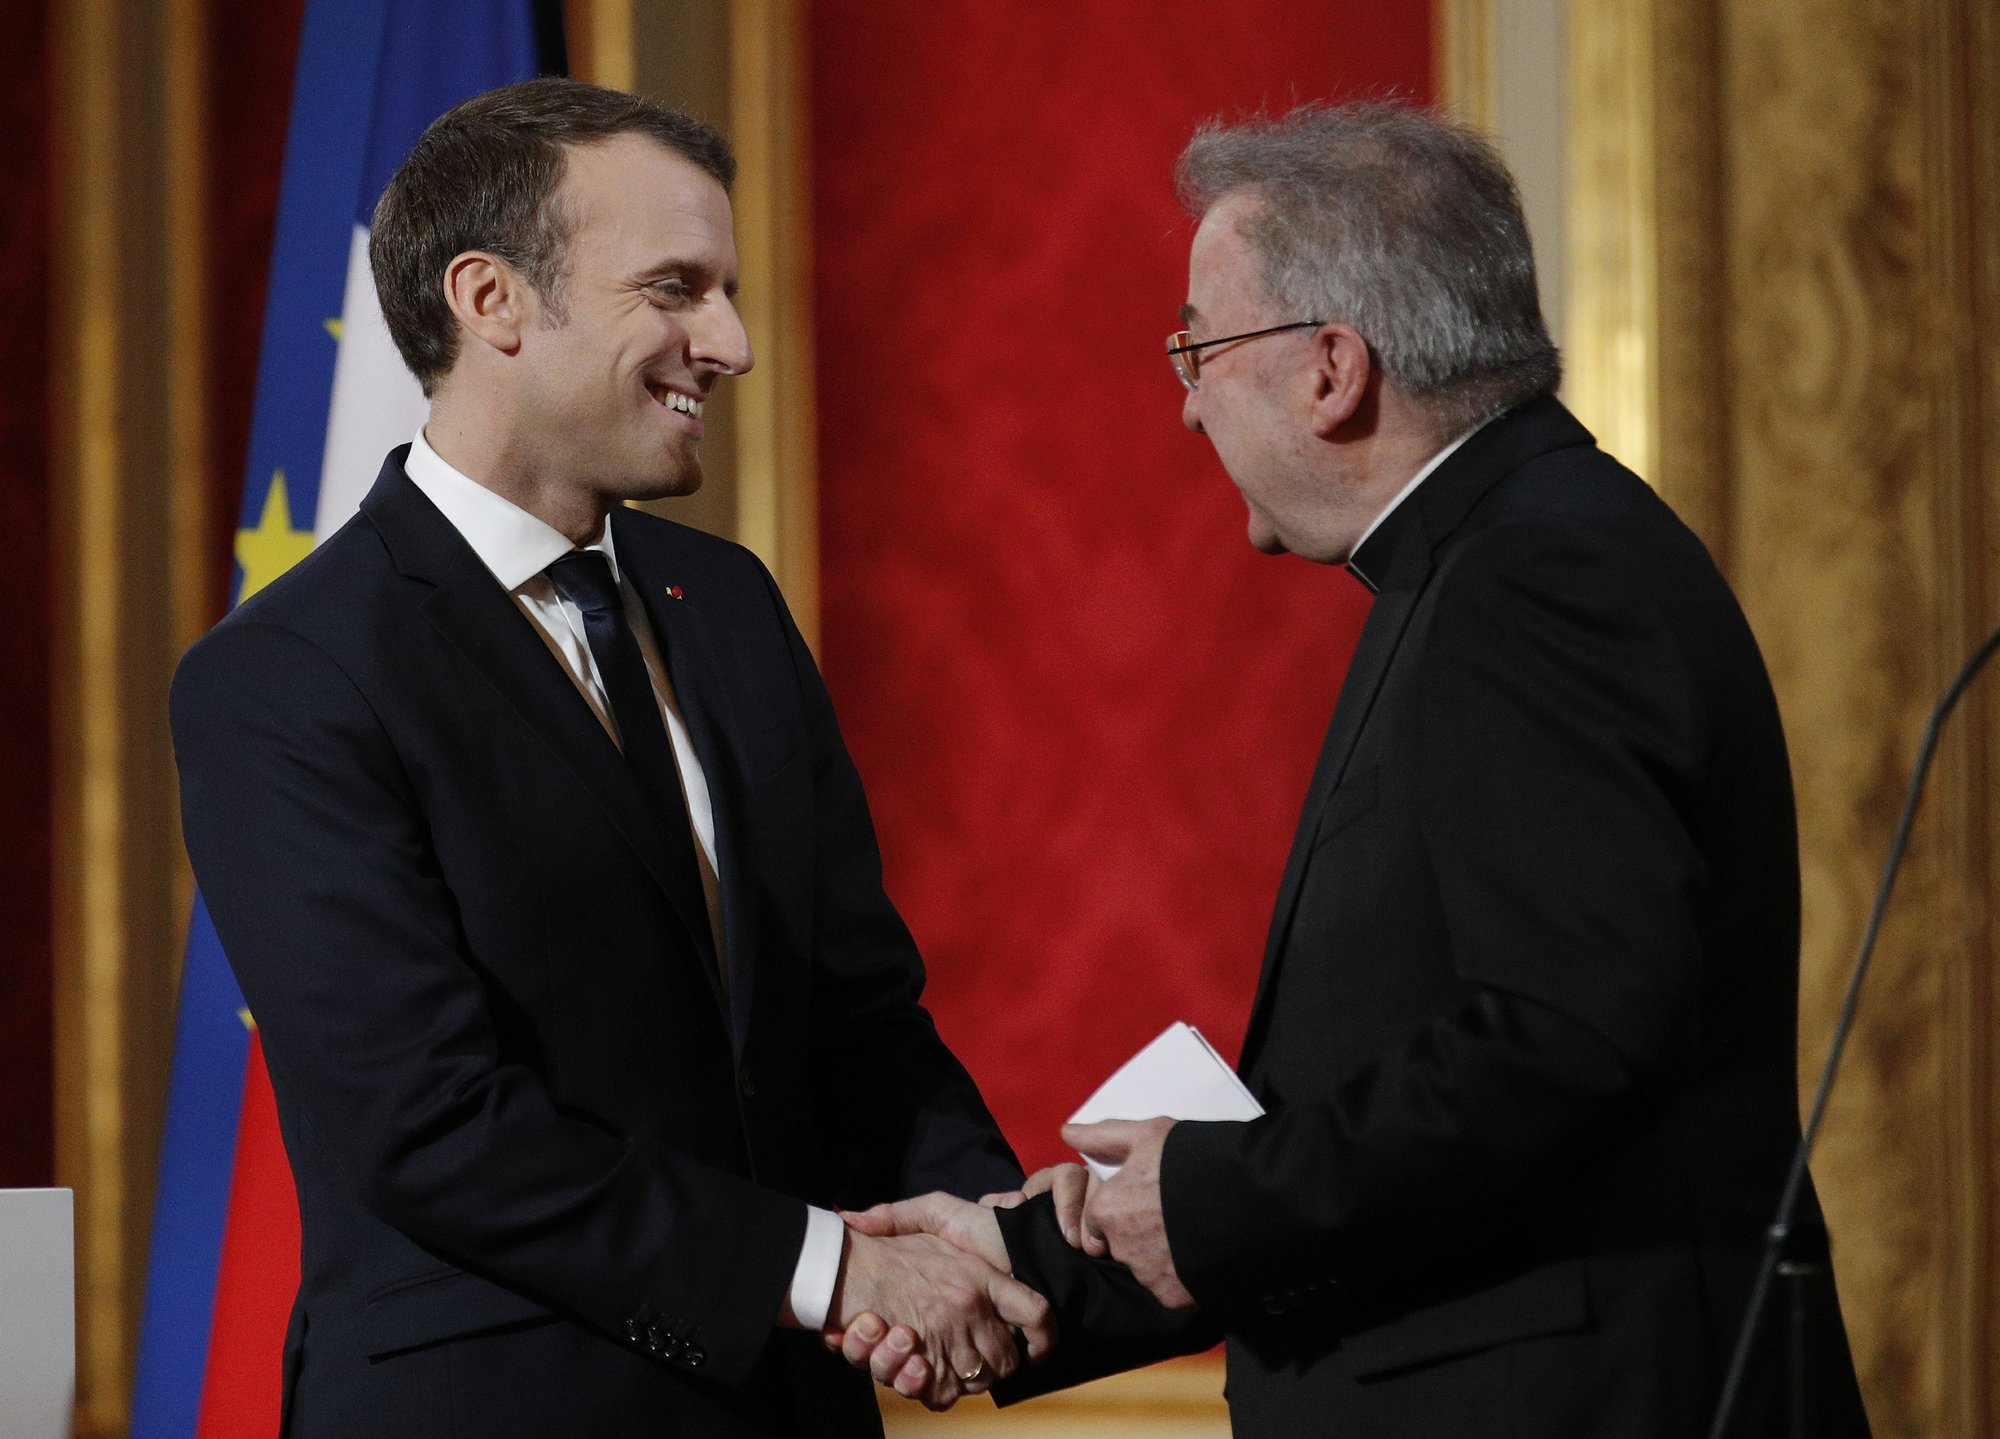 Vatican lifts French archbishop's immunity in groping probe